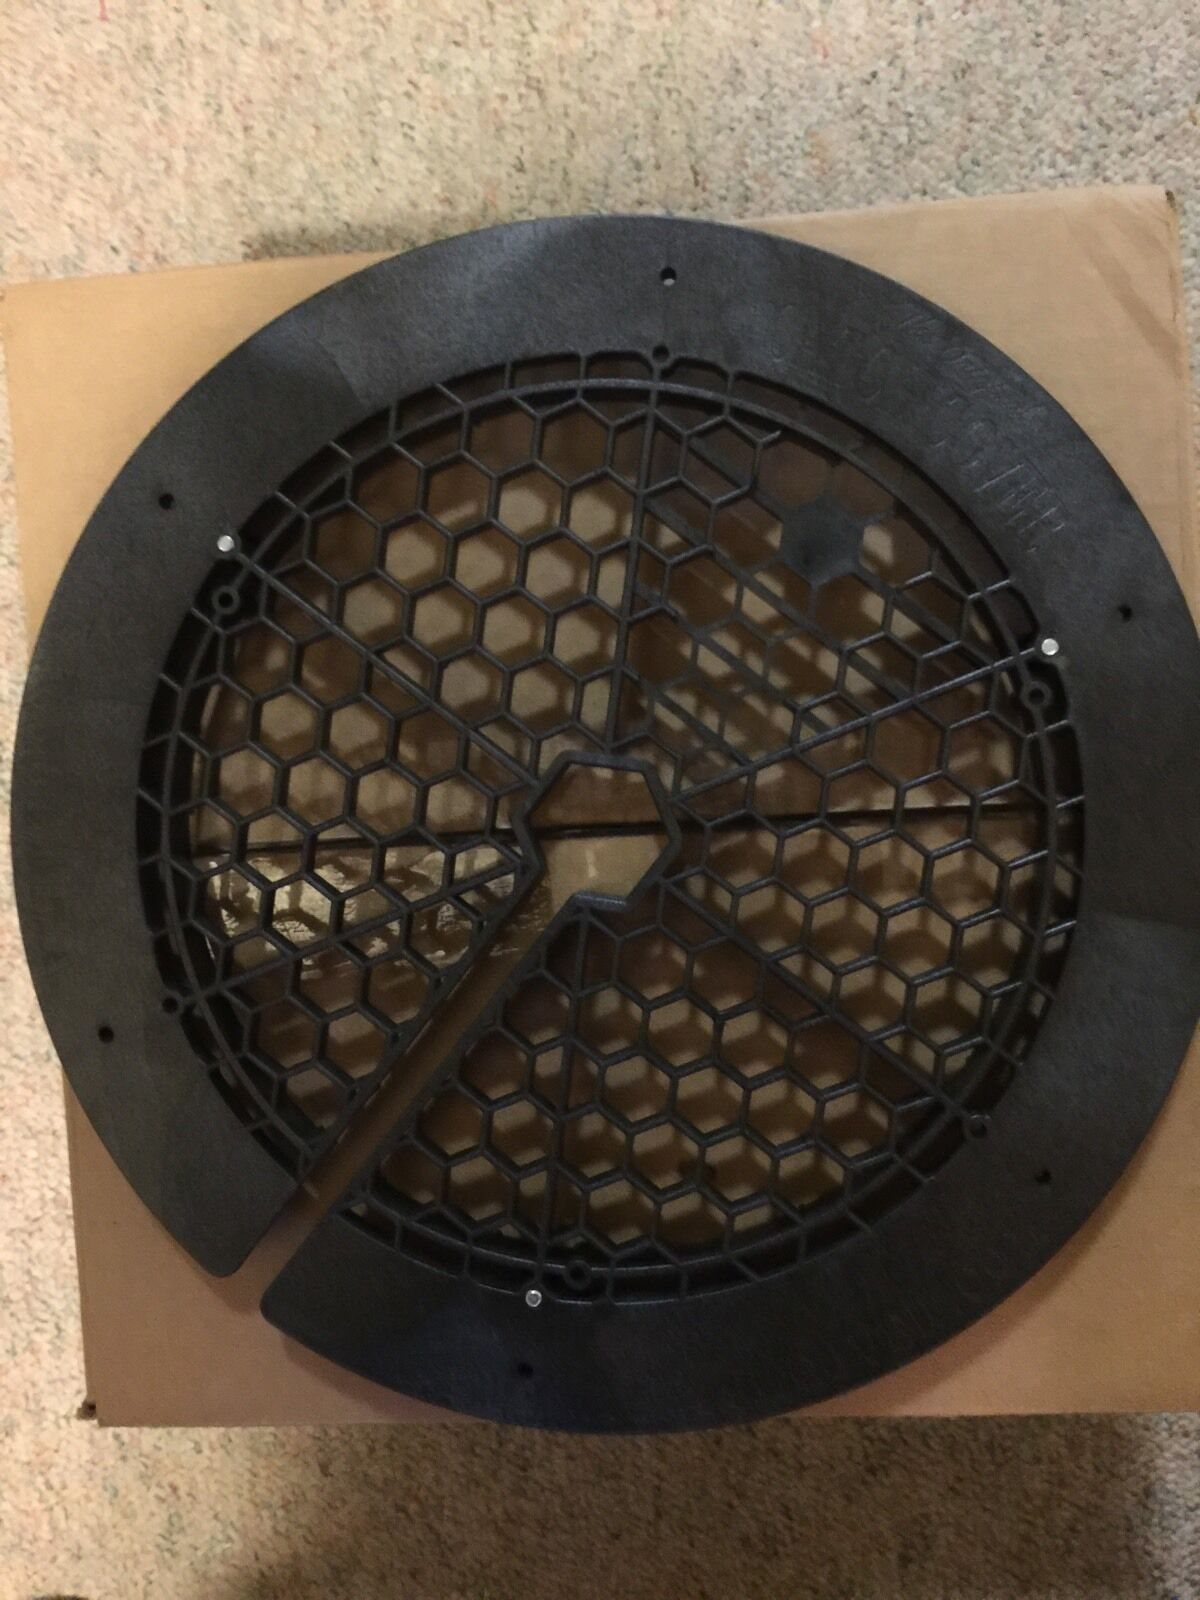 6 Catch Cover Safety Grill Hole Cover Ice pesca Prossoects Valuables & bambini CC09